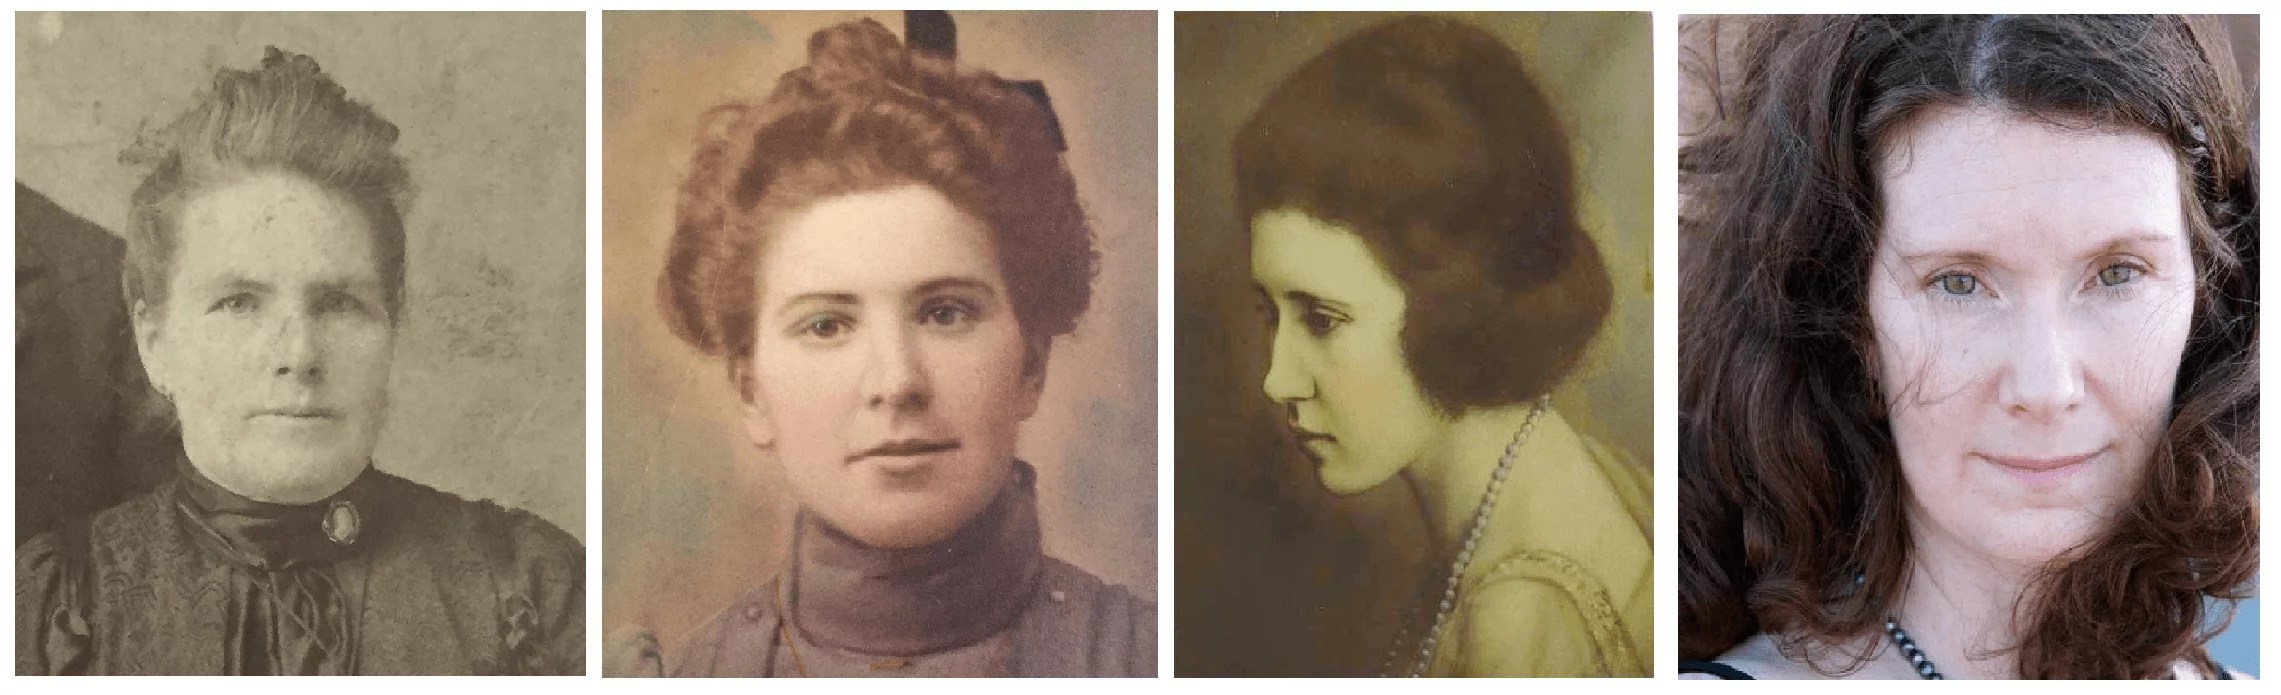 """From left, Margie's great-great-grandmother Mary Maher, great-grandmother Margaret """"Maggie"""" (Maher) McKeown, grandmother Margaret McKeown, and Margie Wirth."""